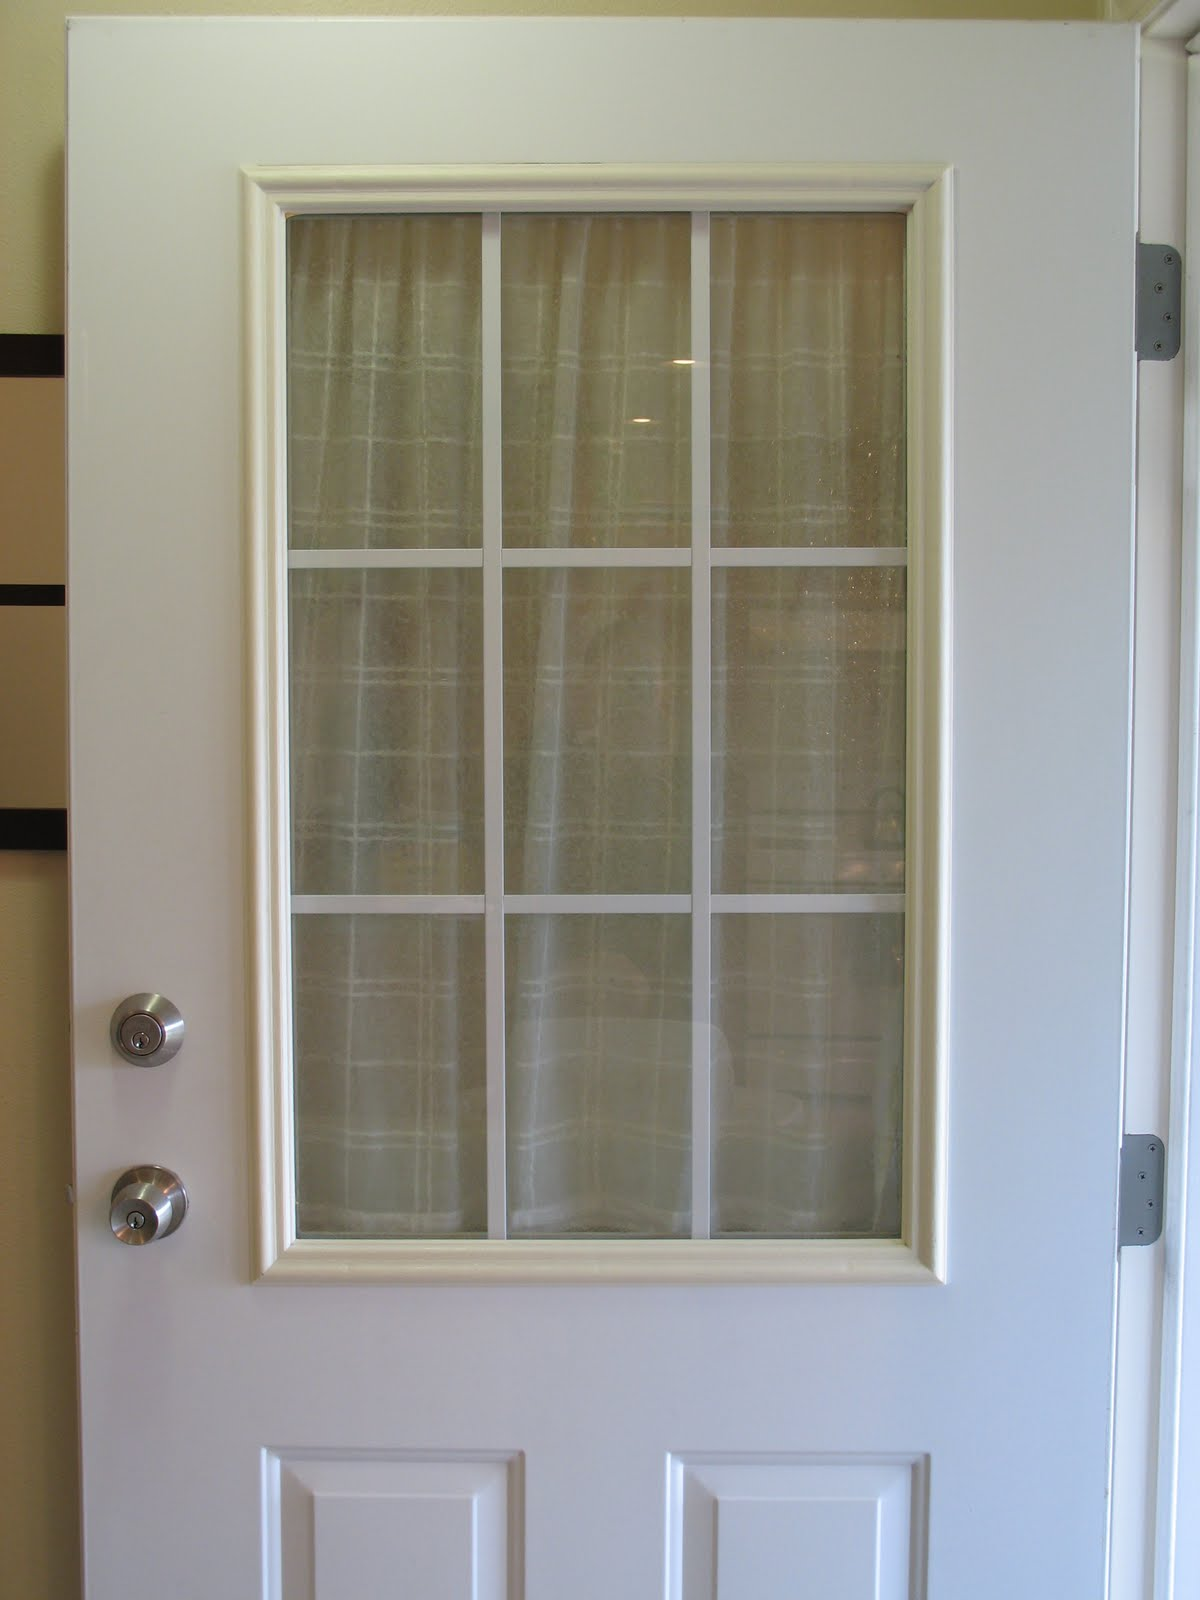 Remodelaholic | Spray Painted Window Trim On Exterior Door